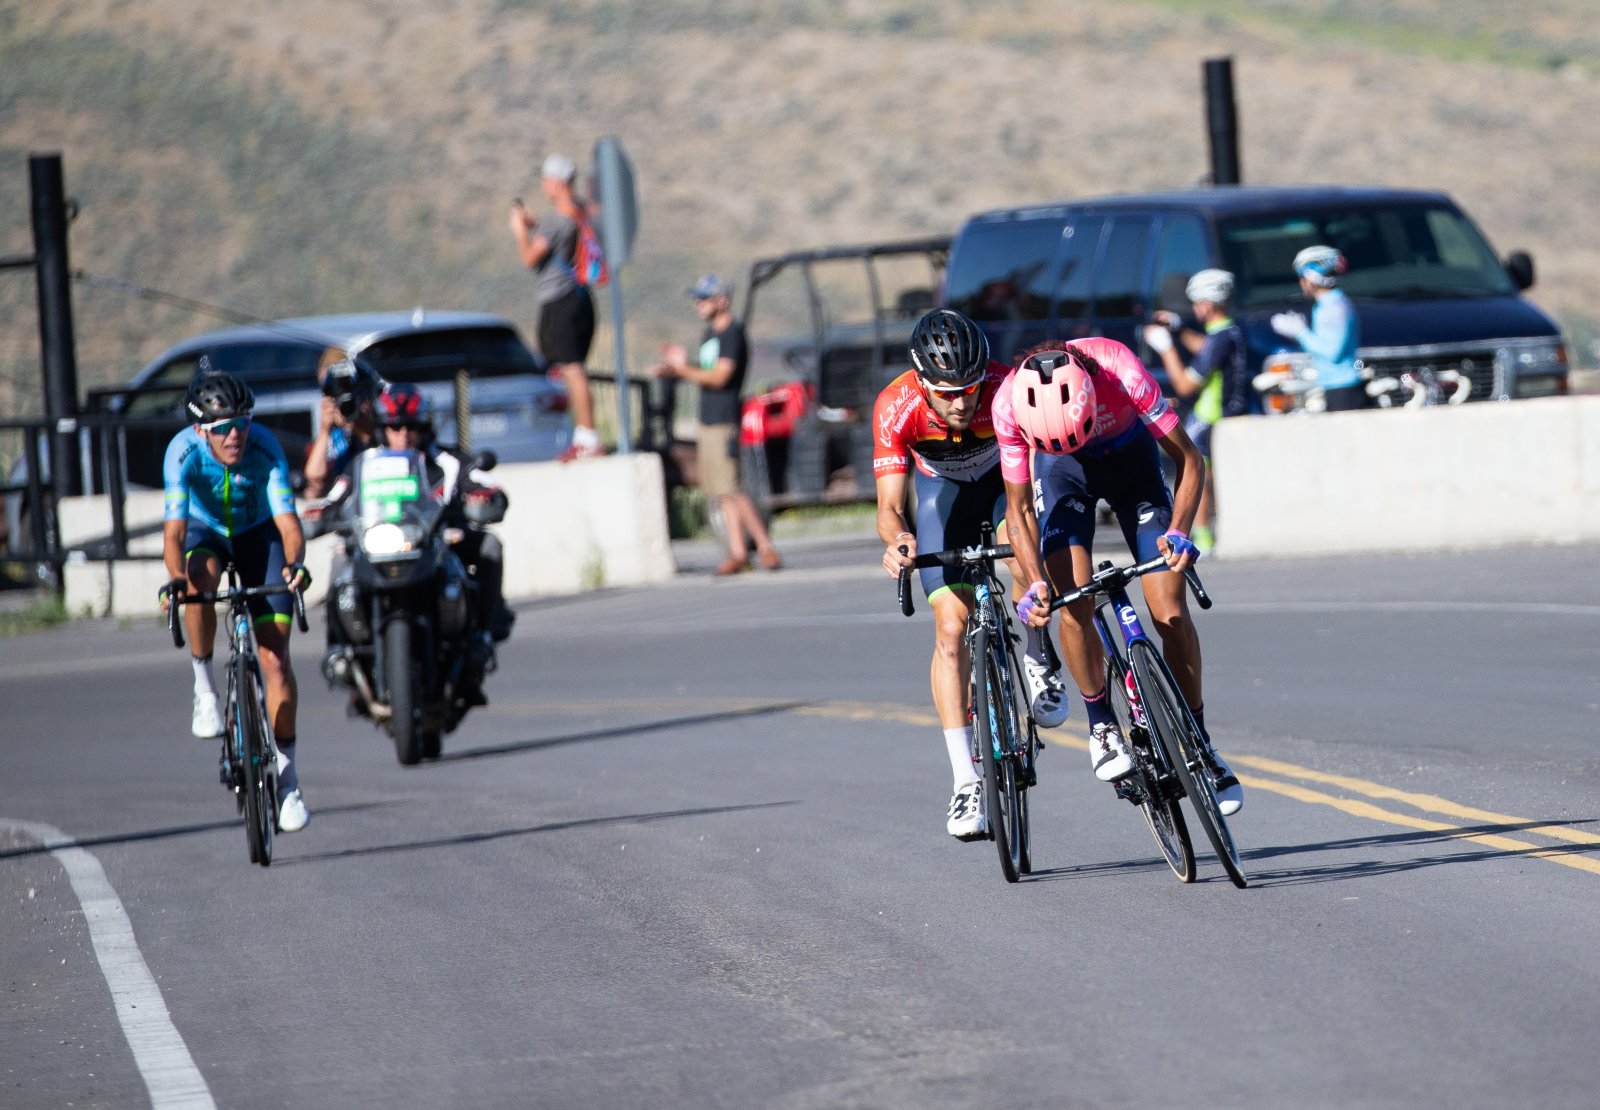 Lachlan attacks mulitple times up the climb but could not shake off McCormick.